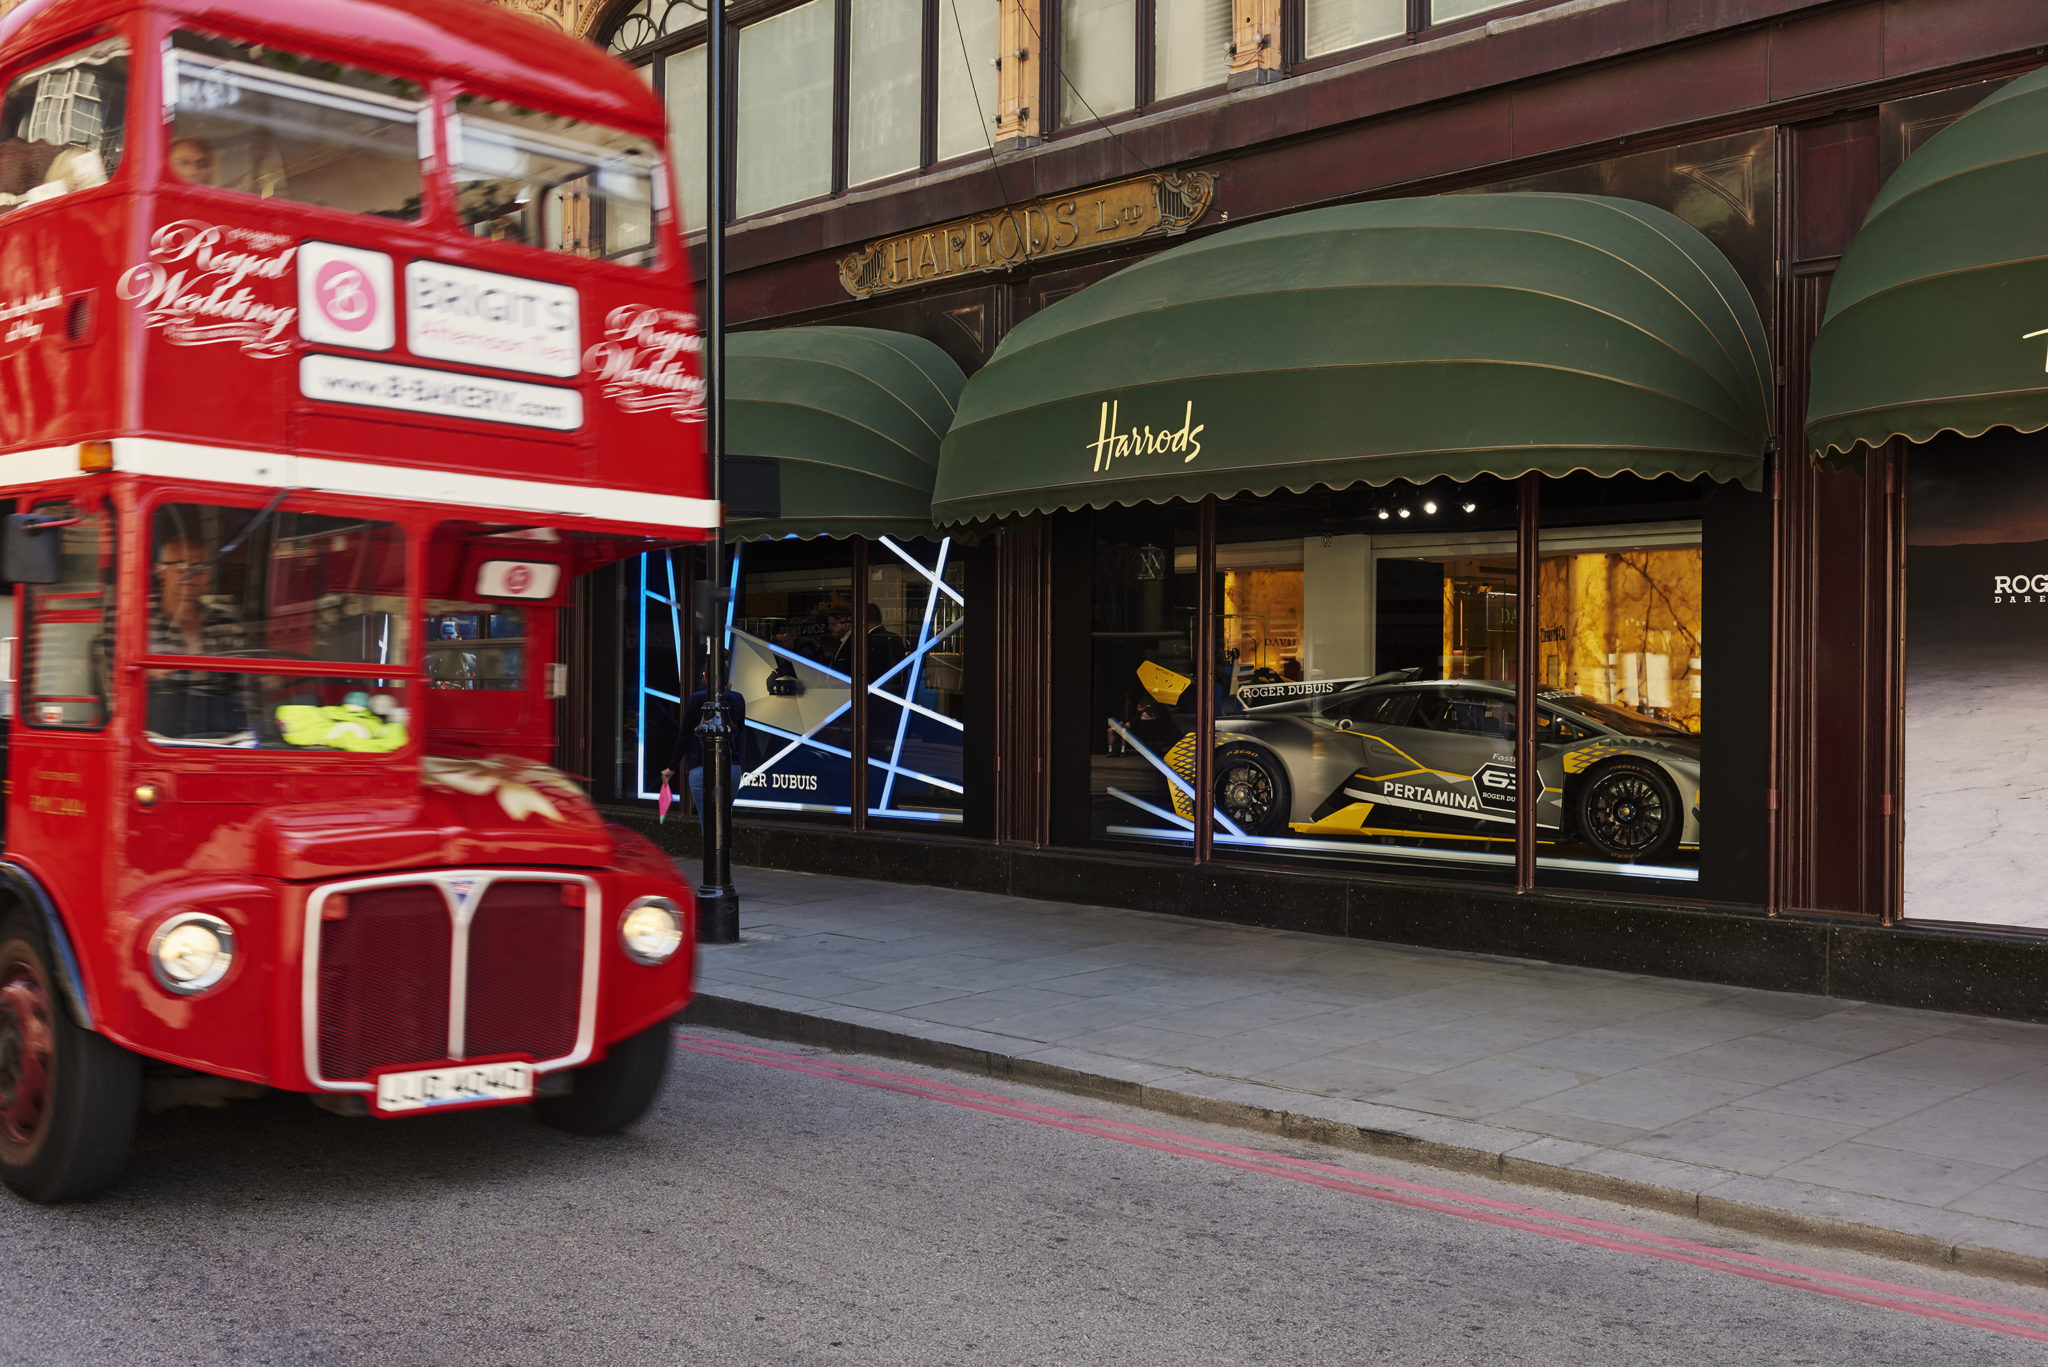 180702-rd-harrods-main-window-04-025